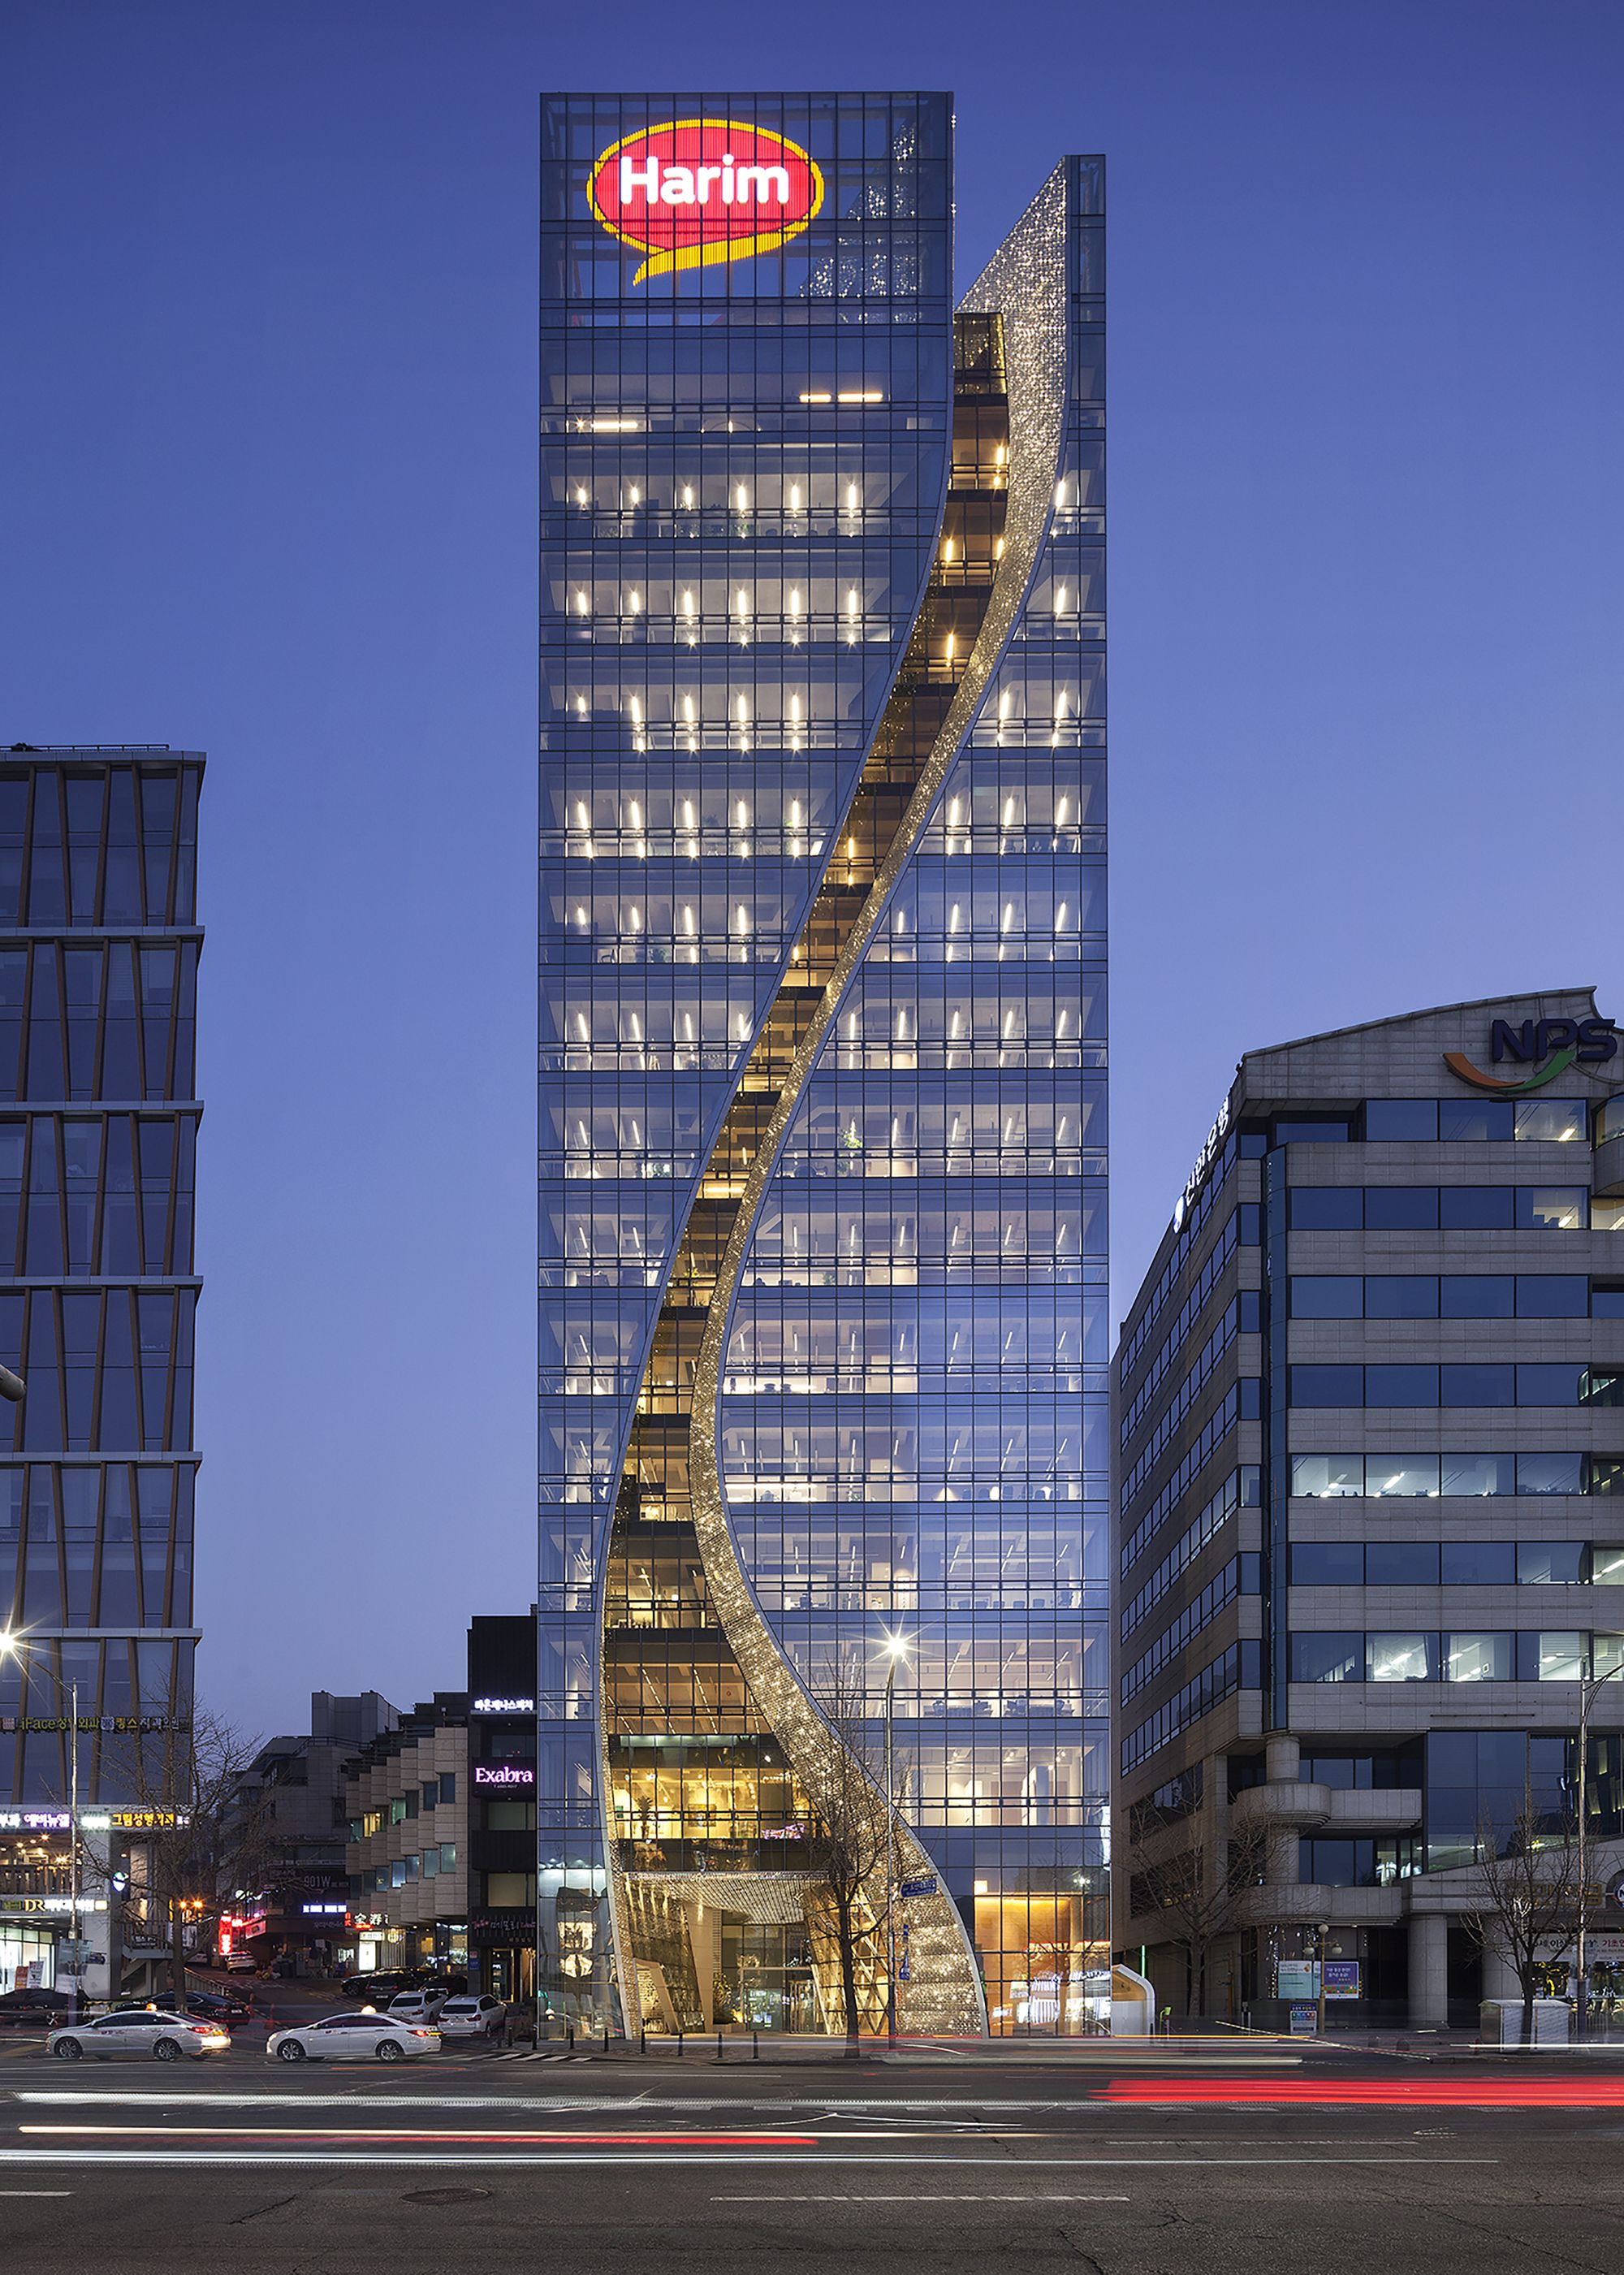 Image 1 of 20 from gallery of Harim Group Headquarters Building / The Beck Group. Photograph by Sung Hoon Yum